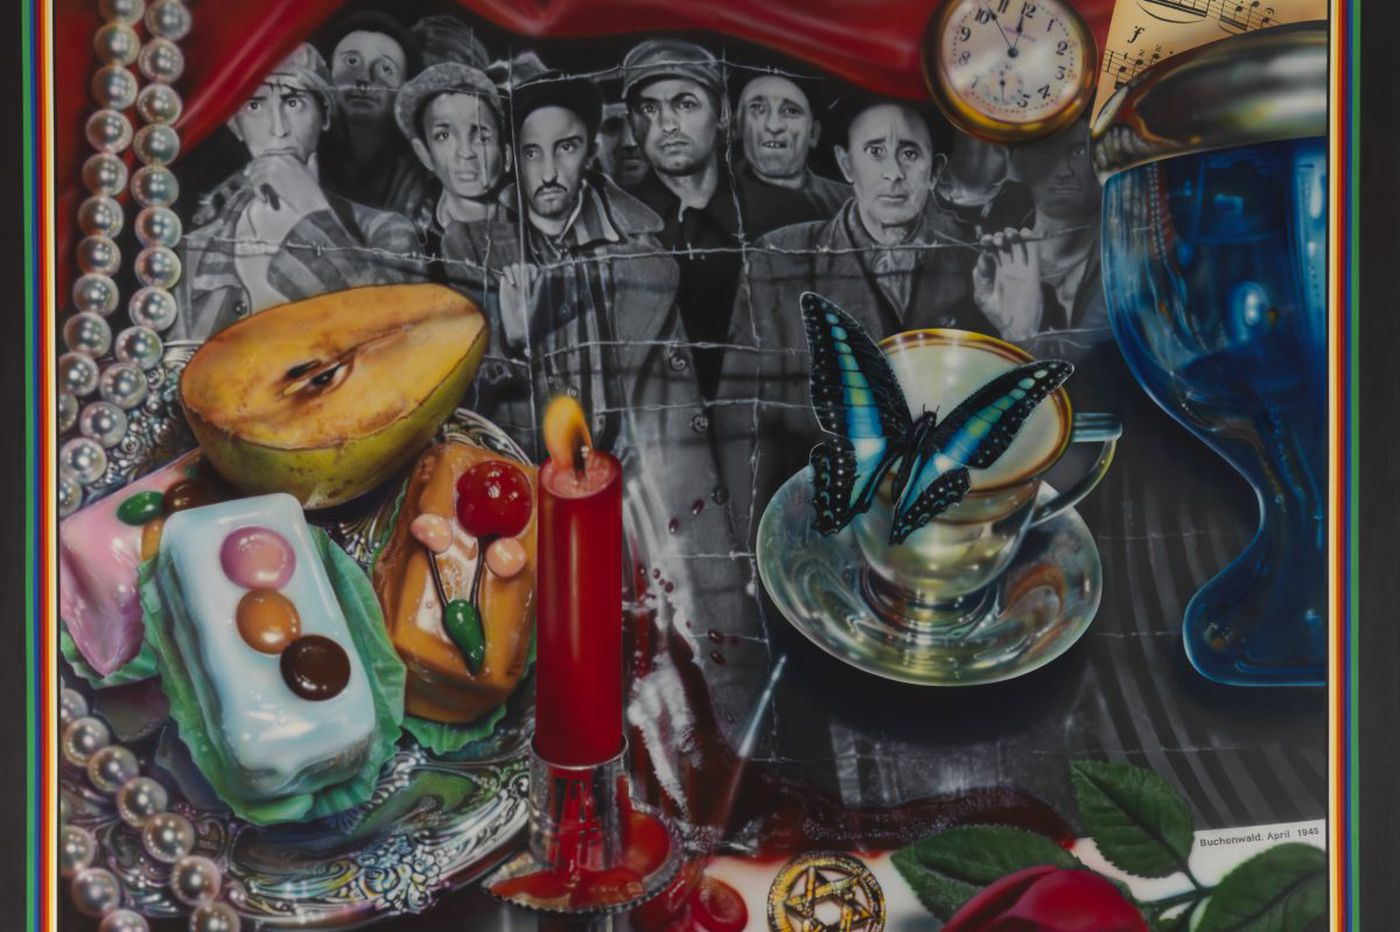 Monumental painting 'World War II' among PAFA's new acquisitions